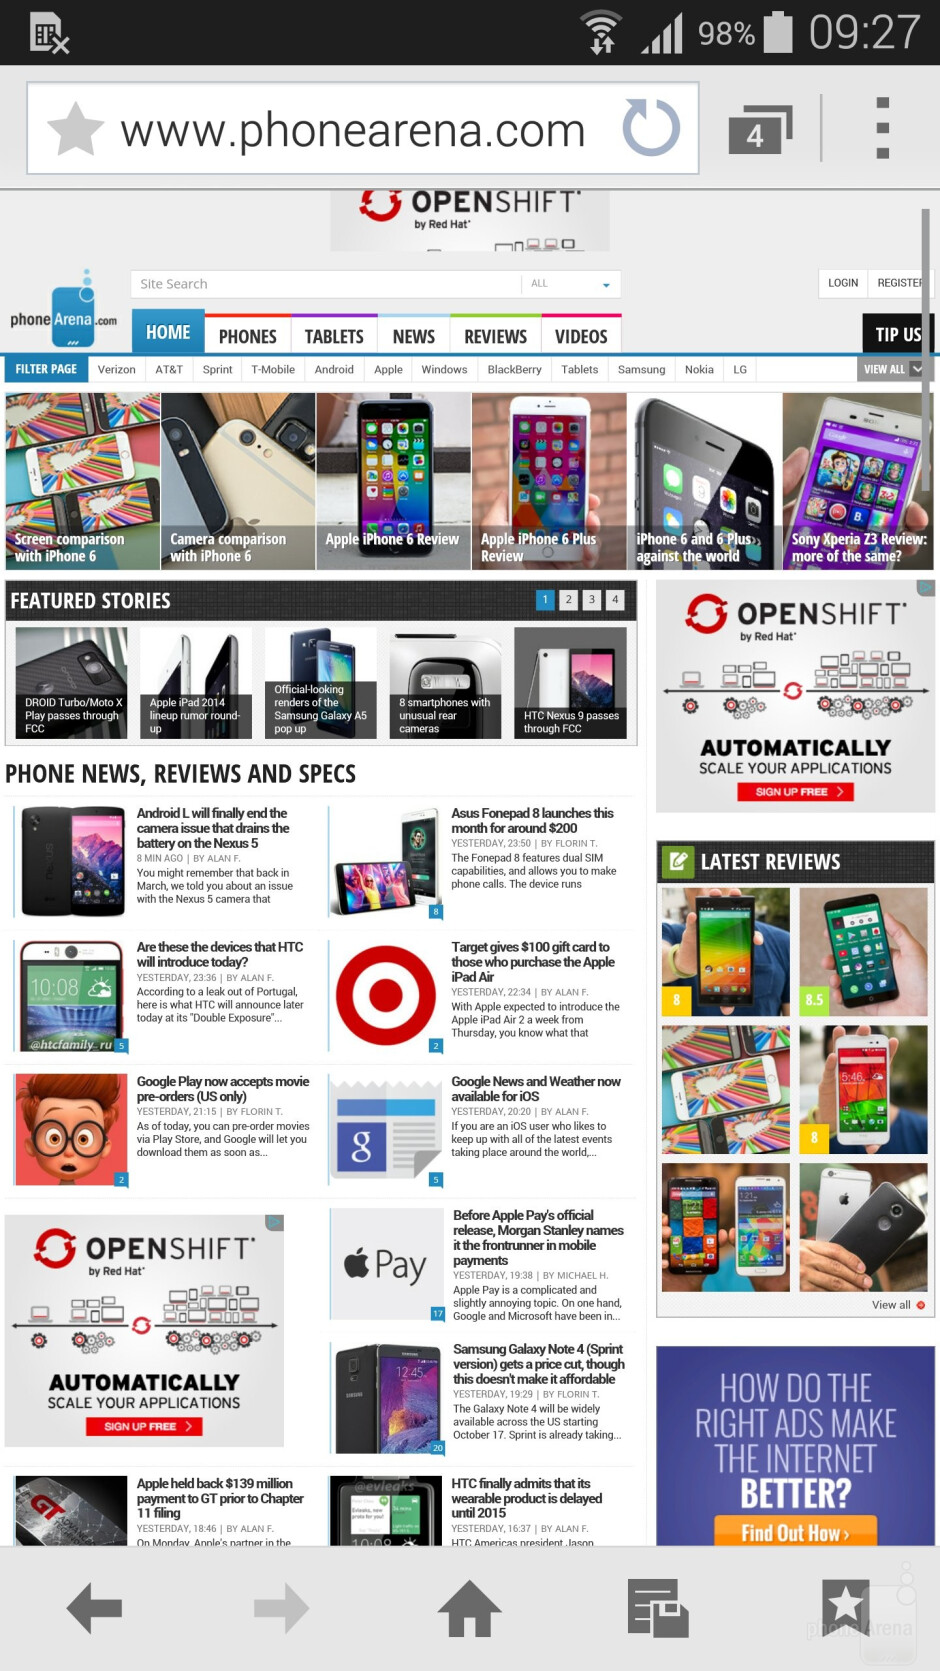 Web browsing on the Samsung Galaxy Note 4 - Samsung Galaxy Note 4 vs HTC One (M8)